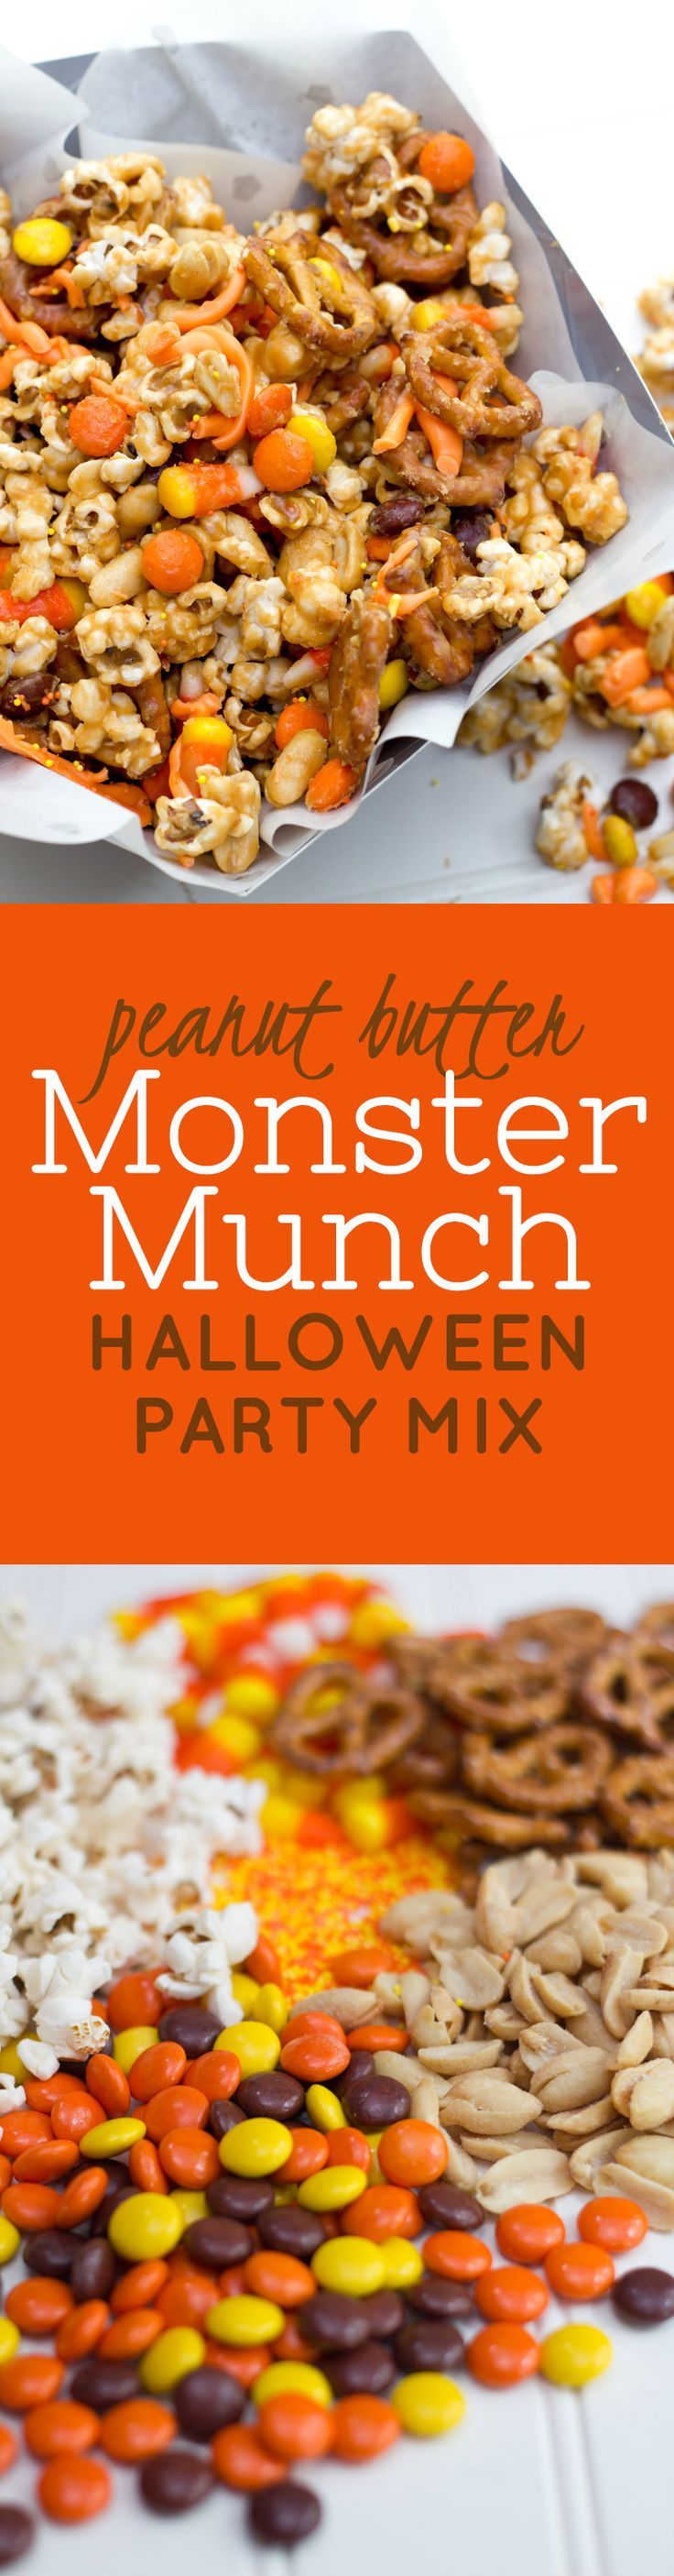 peanut butter halloween party mix - Halloween Name Ideas